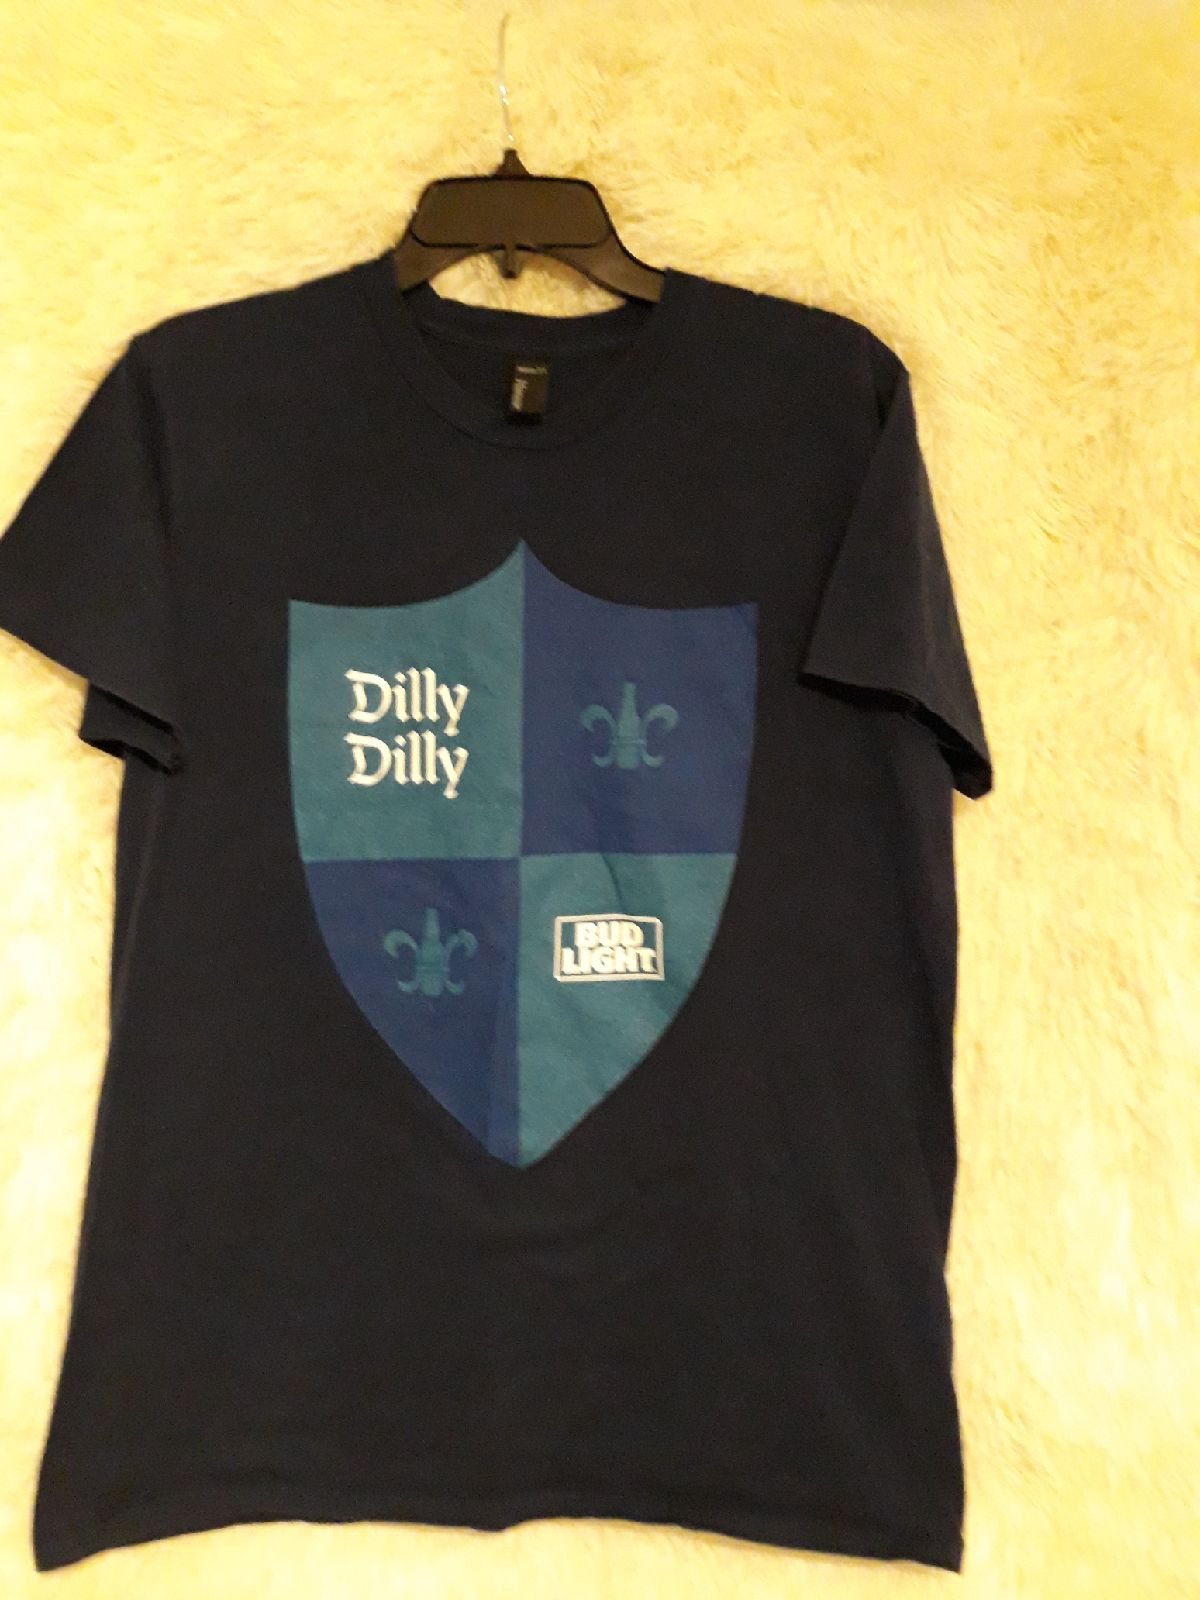 Dilly Dilly Bud Light Tee